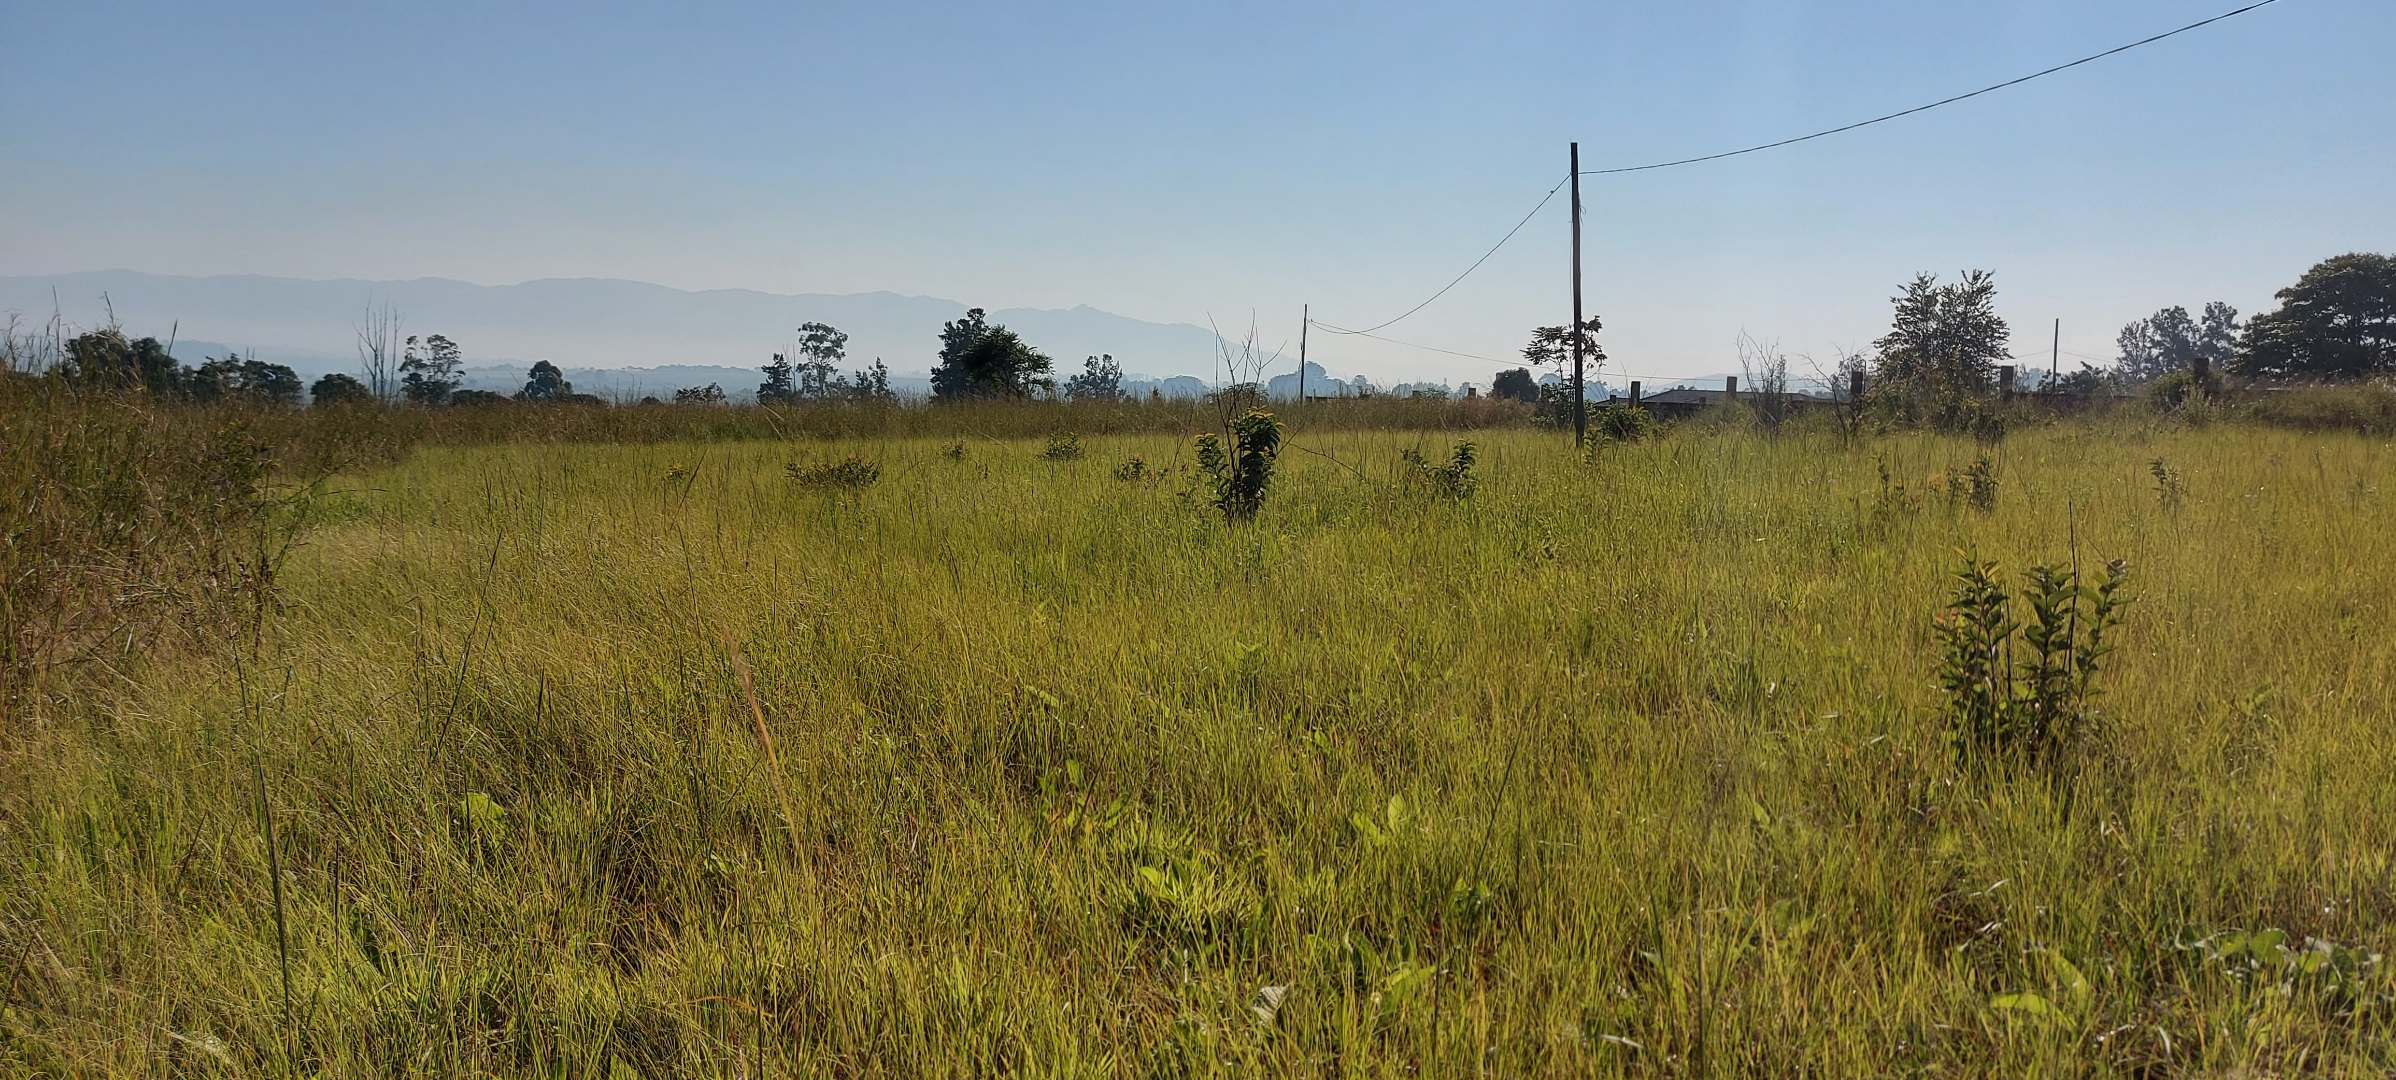 Vacant Land / Plot in Malkerns For Sale